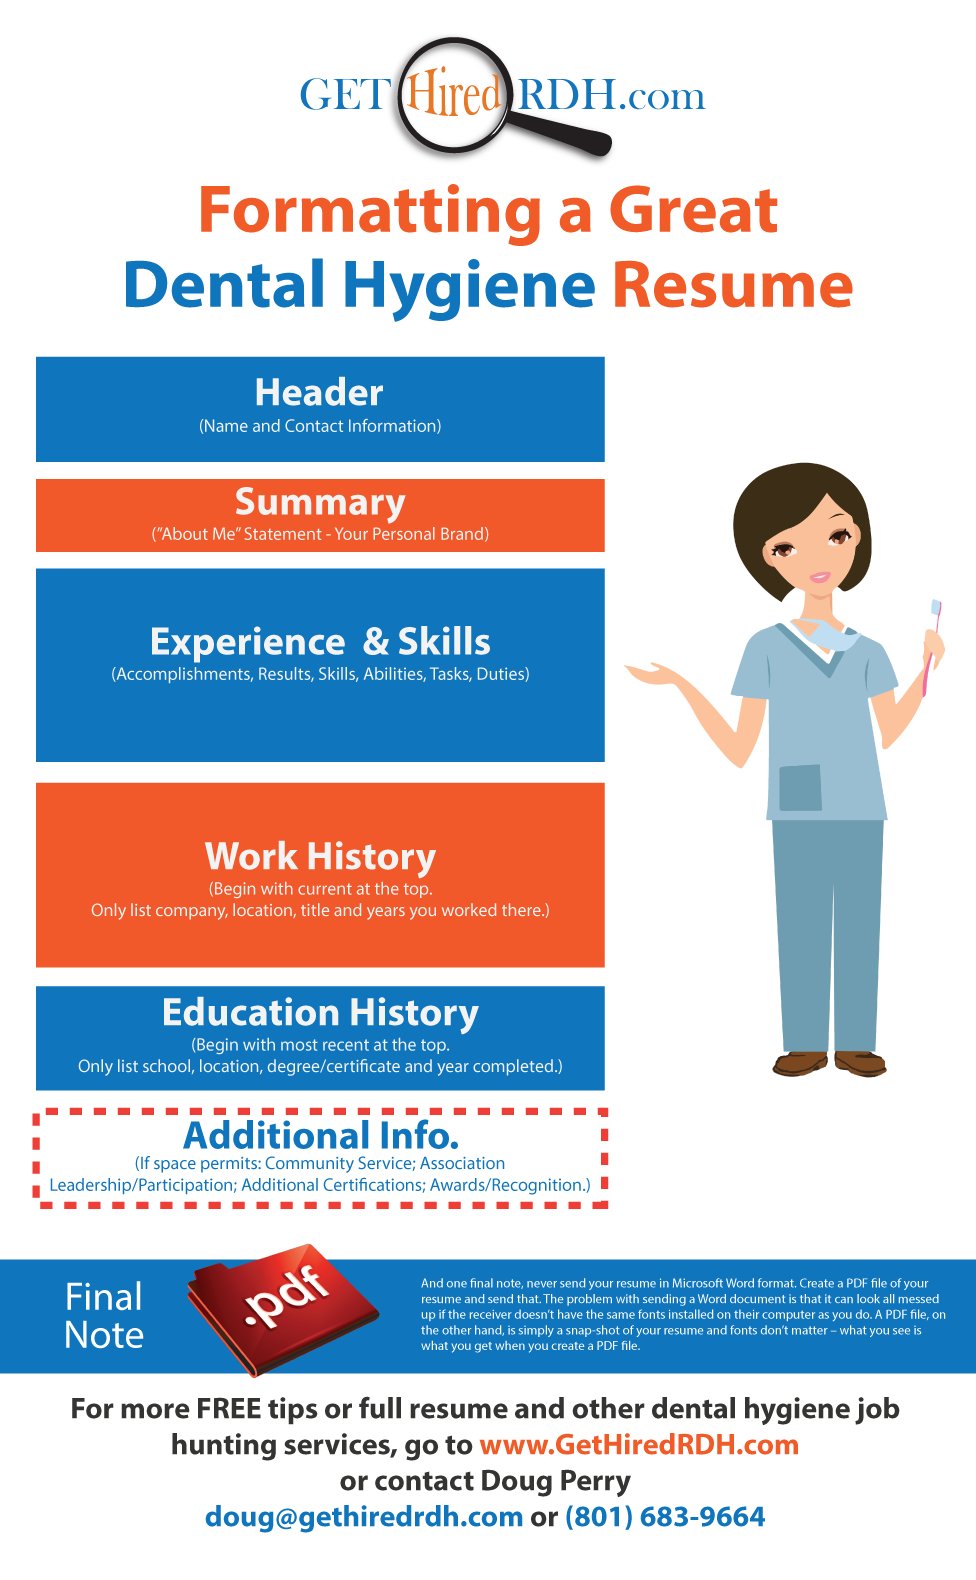 Building A Great Dental Hygiene Resume Hygiene Edge